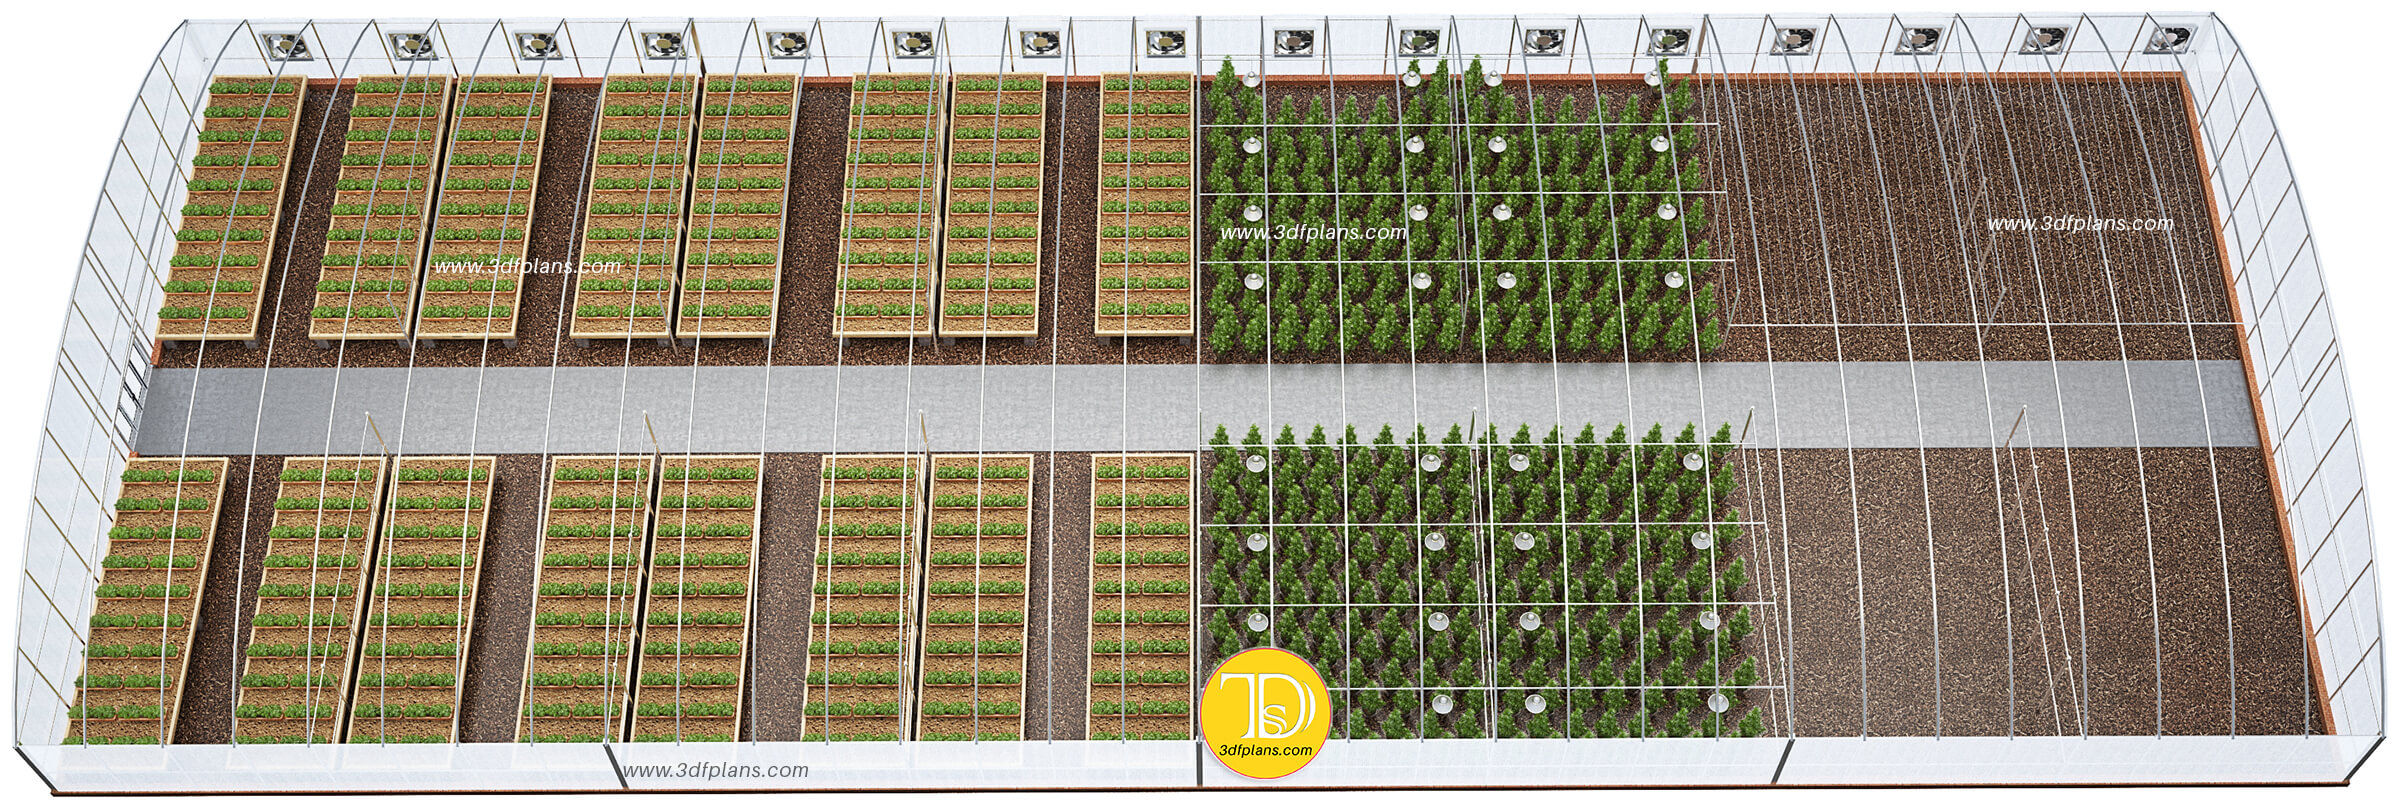 Cannabis greenhouse, greenhouse 3d floor plan